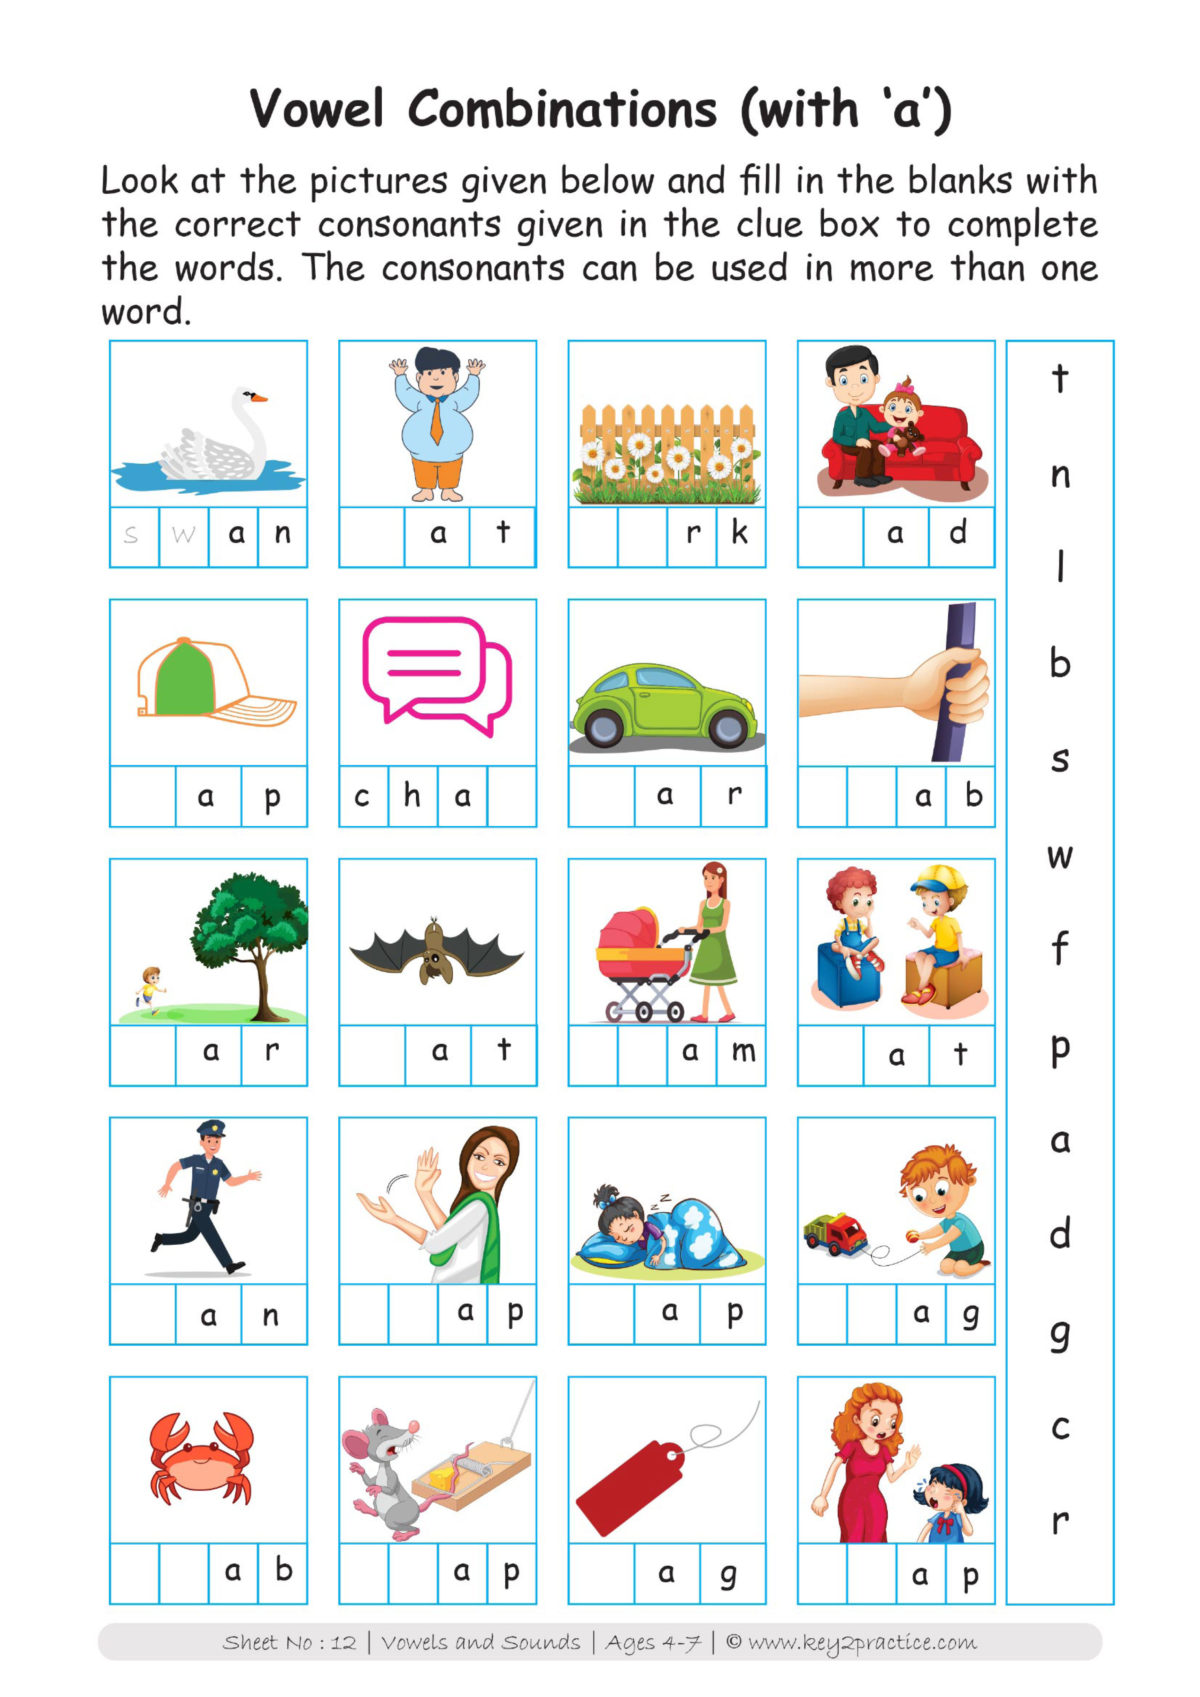 Vowels and Consonants Worksheets I Pre-primary classes - key2practice [ 1697 x 1200 Pixel ]